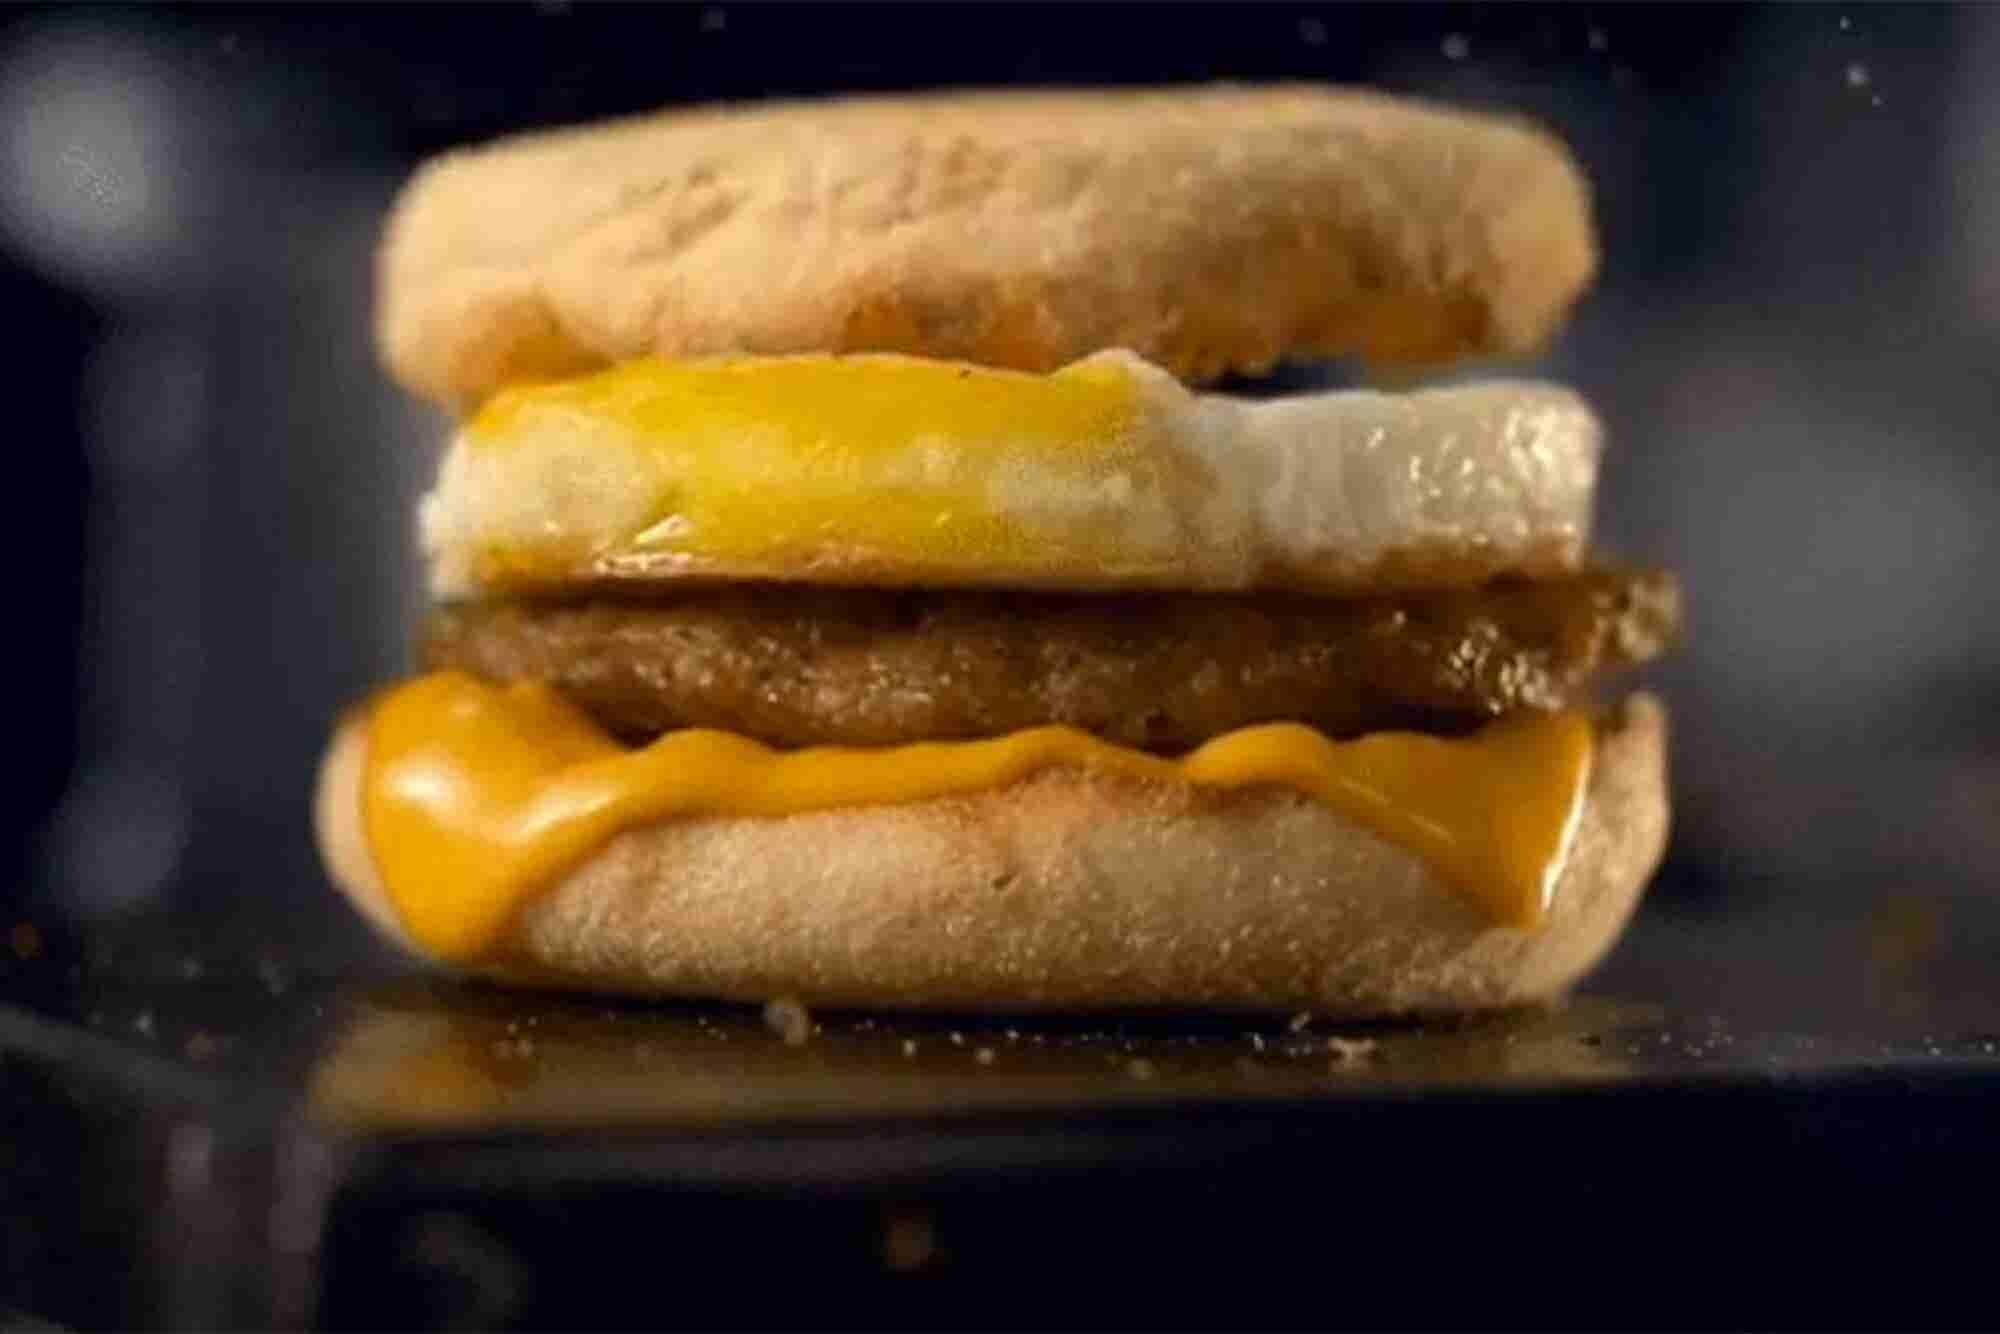 McDonald's New Marketing Campaign Aims to Make its Food Look 'Ugly'